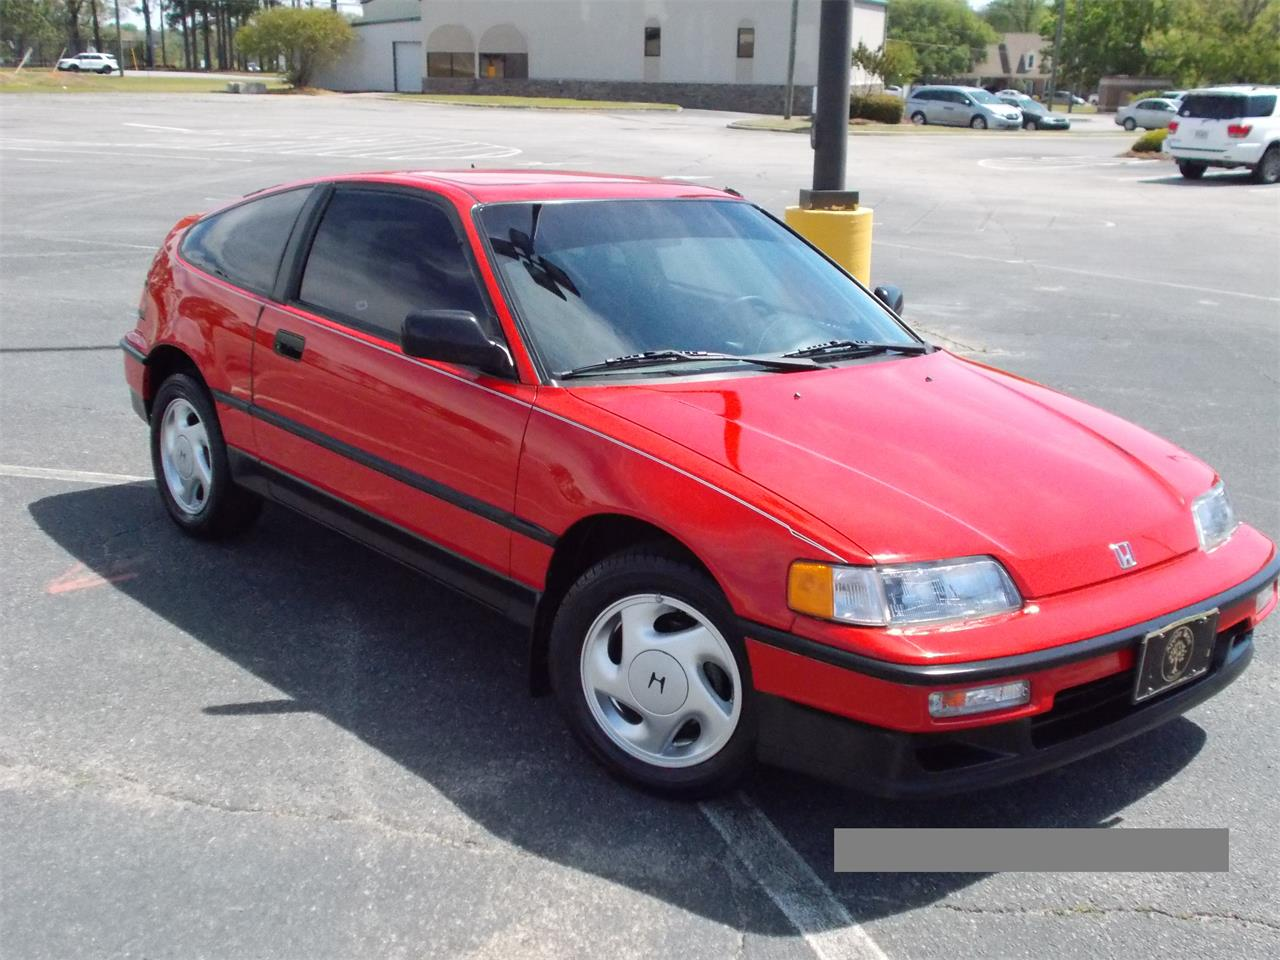 Large Picture of 1990 CRX Offered by a Private Seller - N5R3